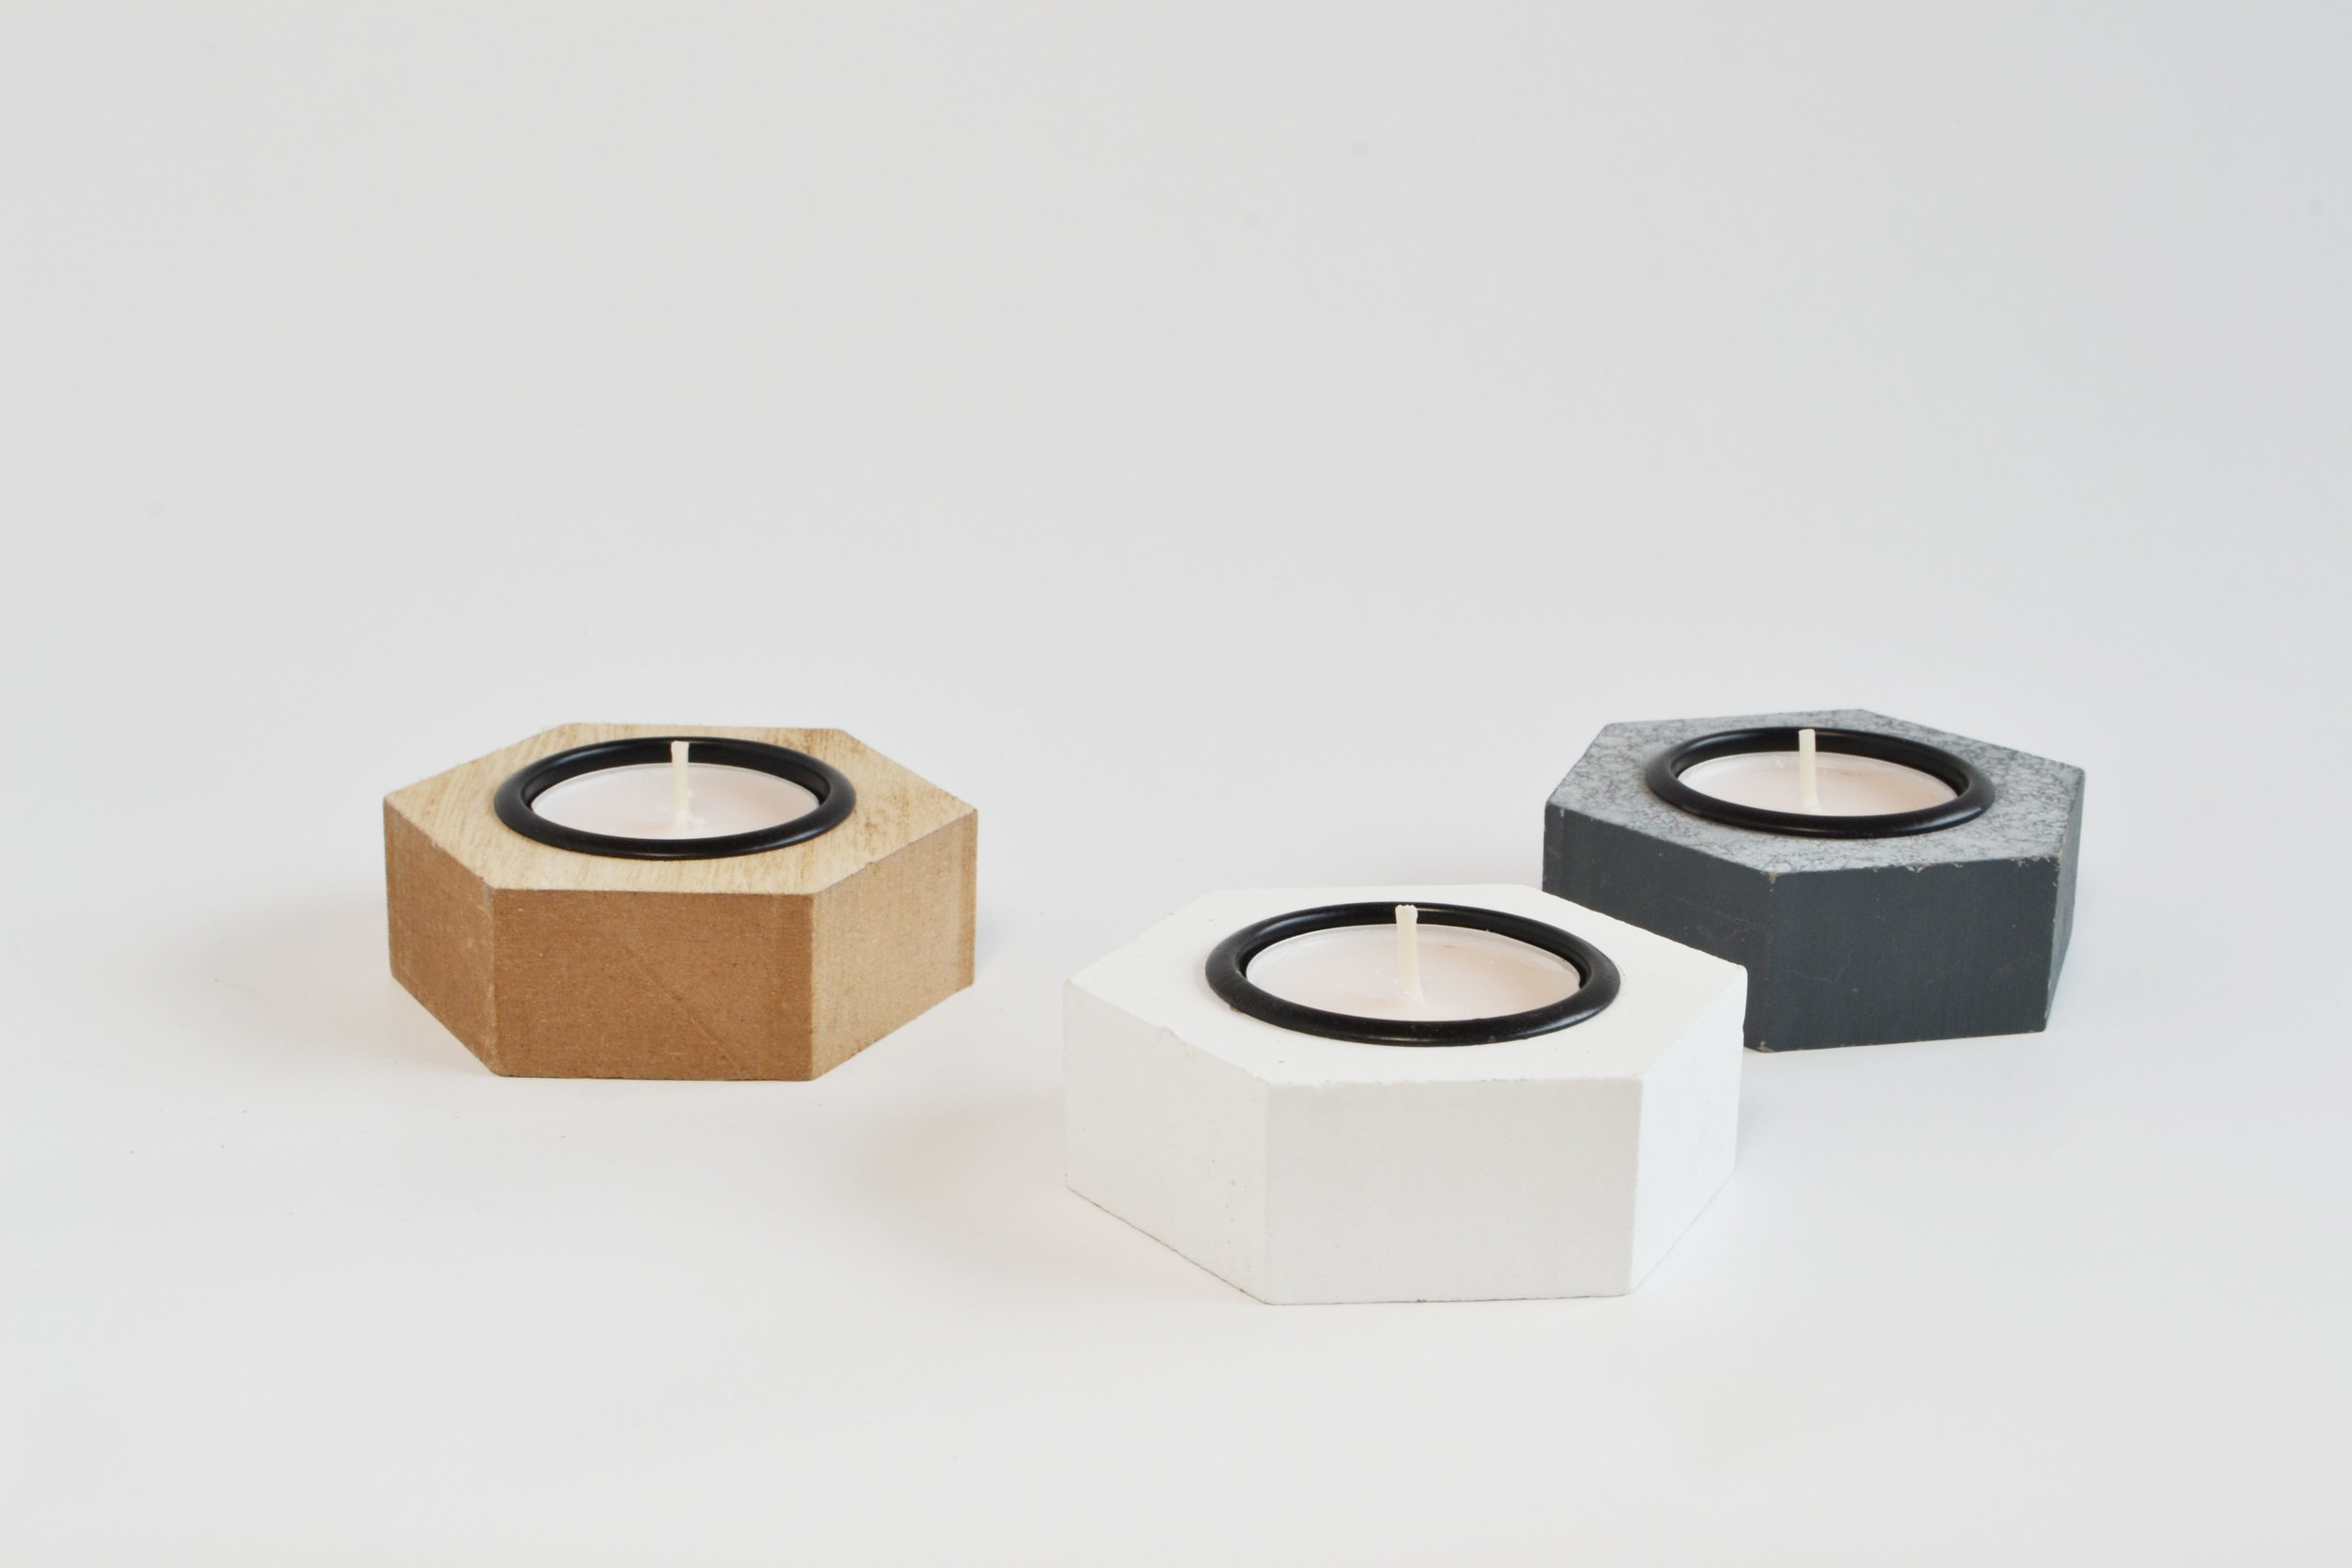 modern hex votive   Quantity: grey - 35 white - 33 wood - 30  Price: $2.50